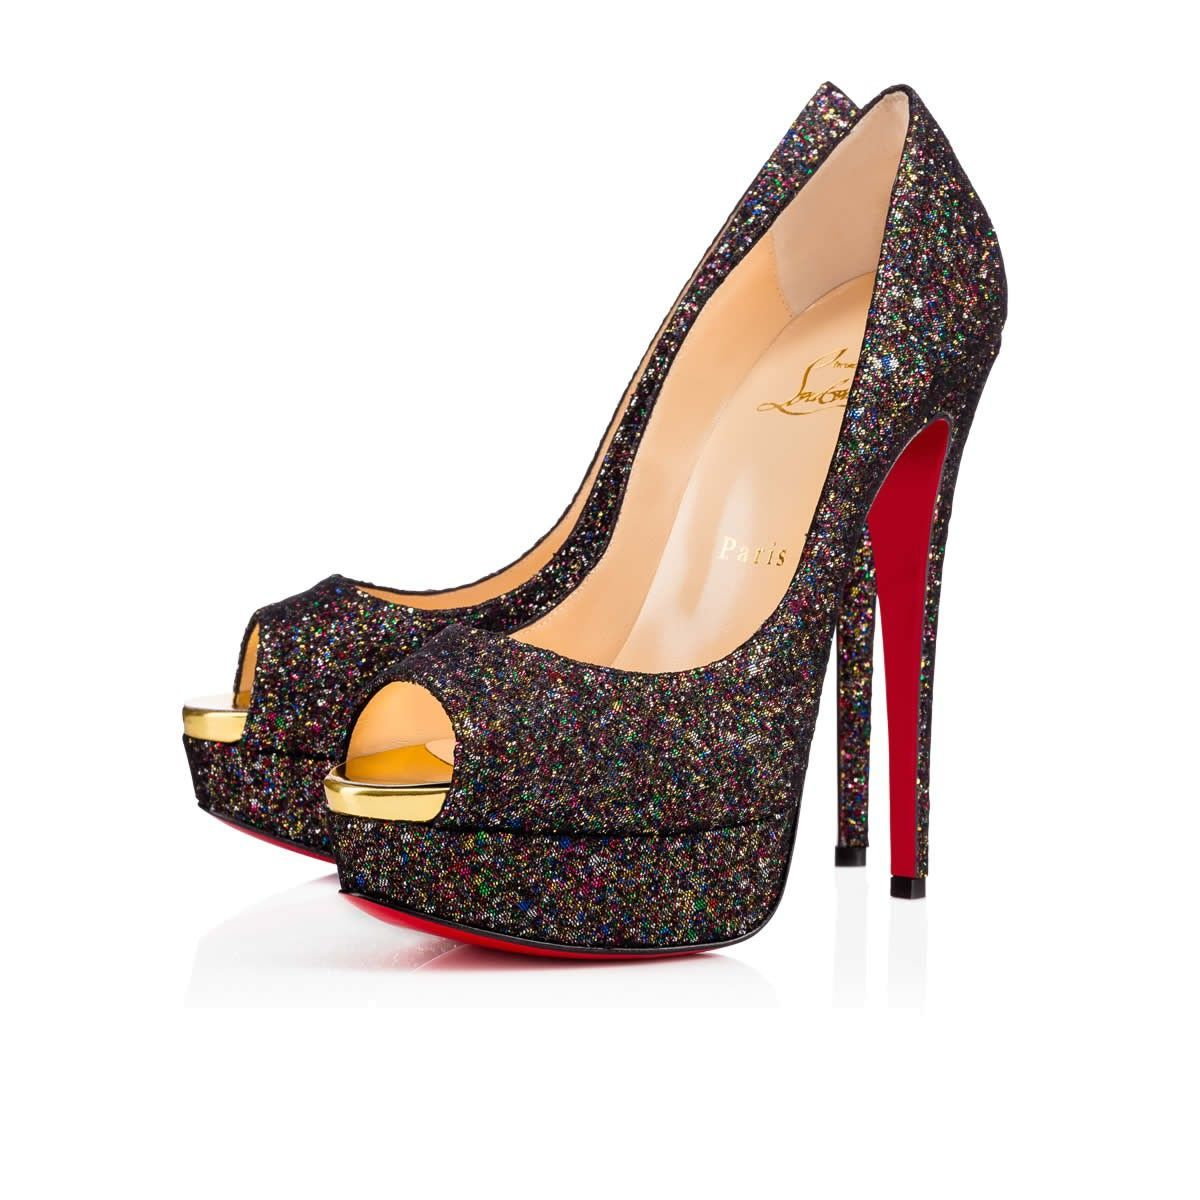 promo code fed23 071af CHRISTIAN LOUBOUTIN Lady Peep 150Mm Multicolor Glitter ...